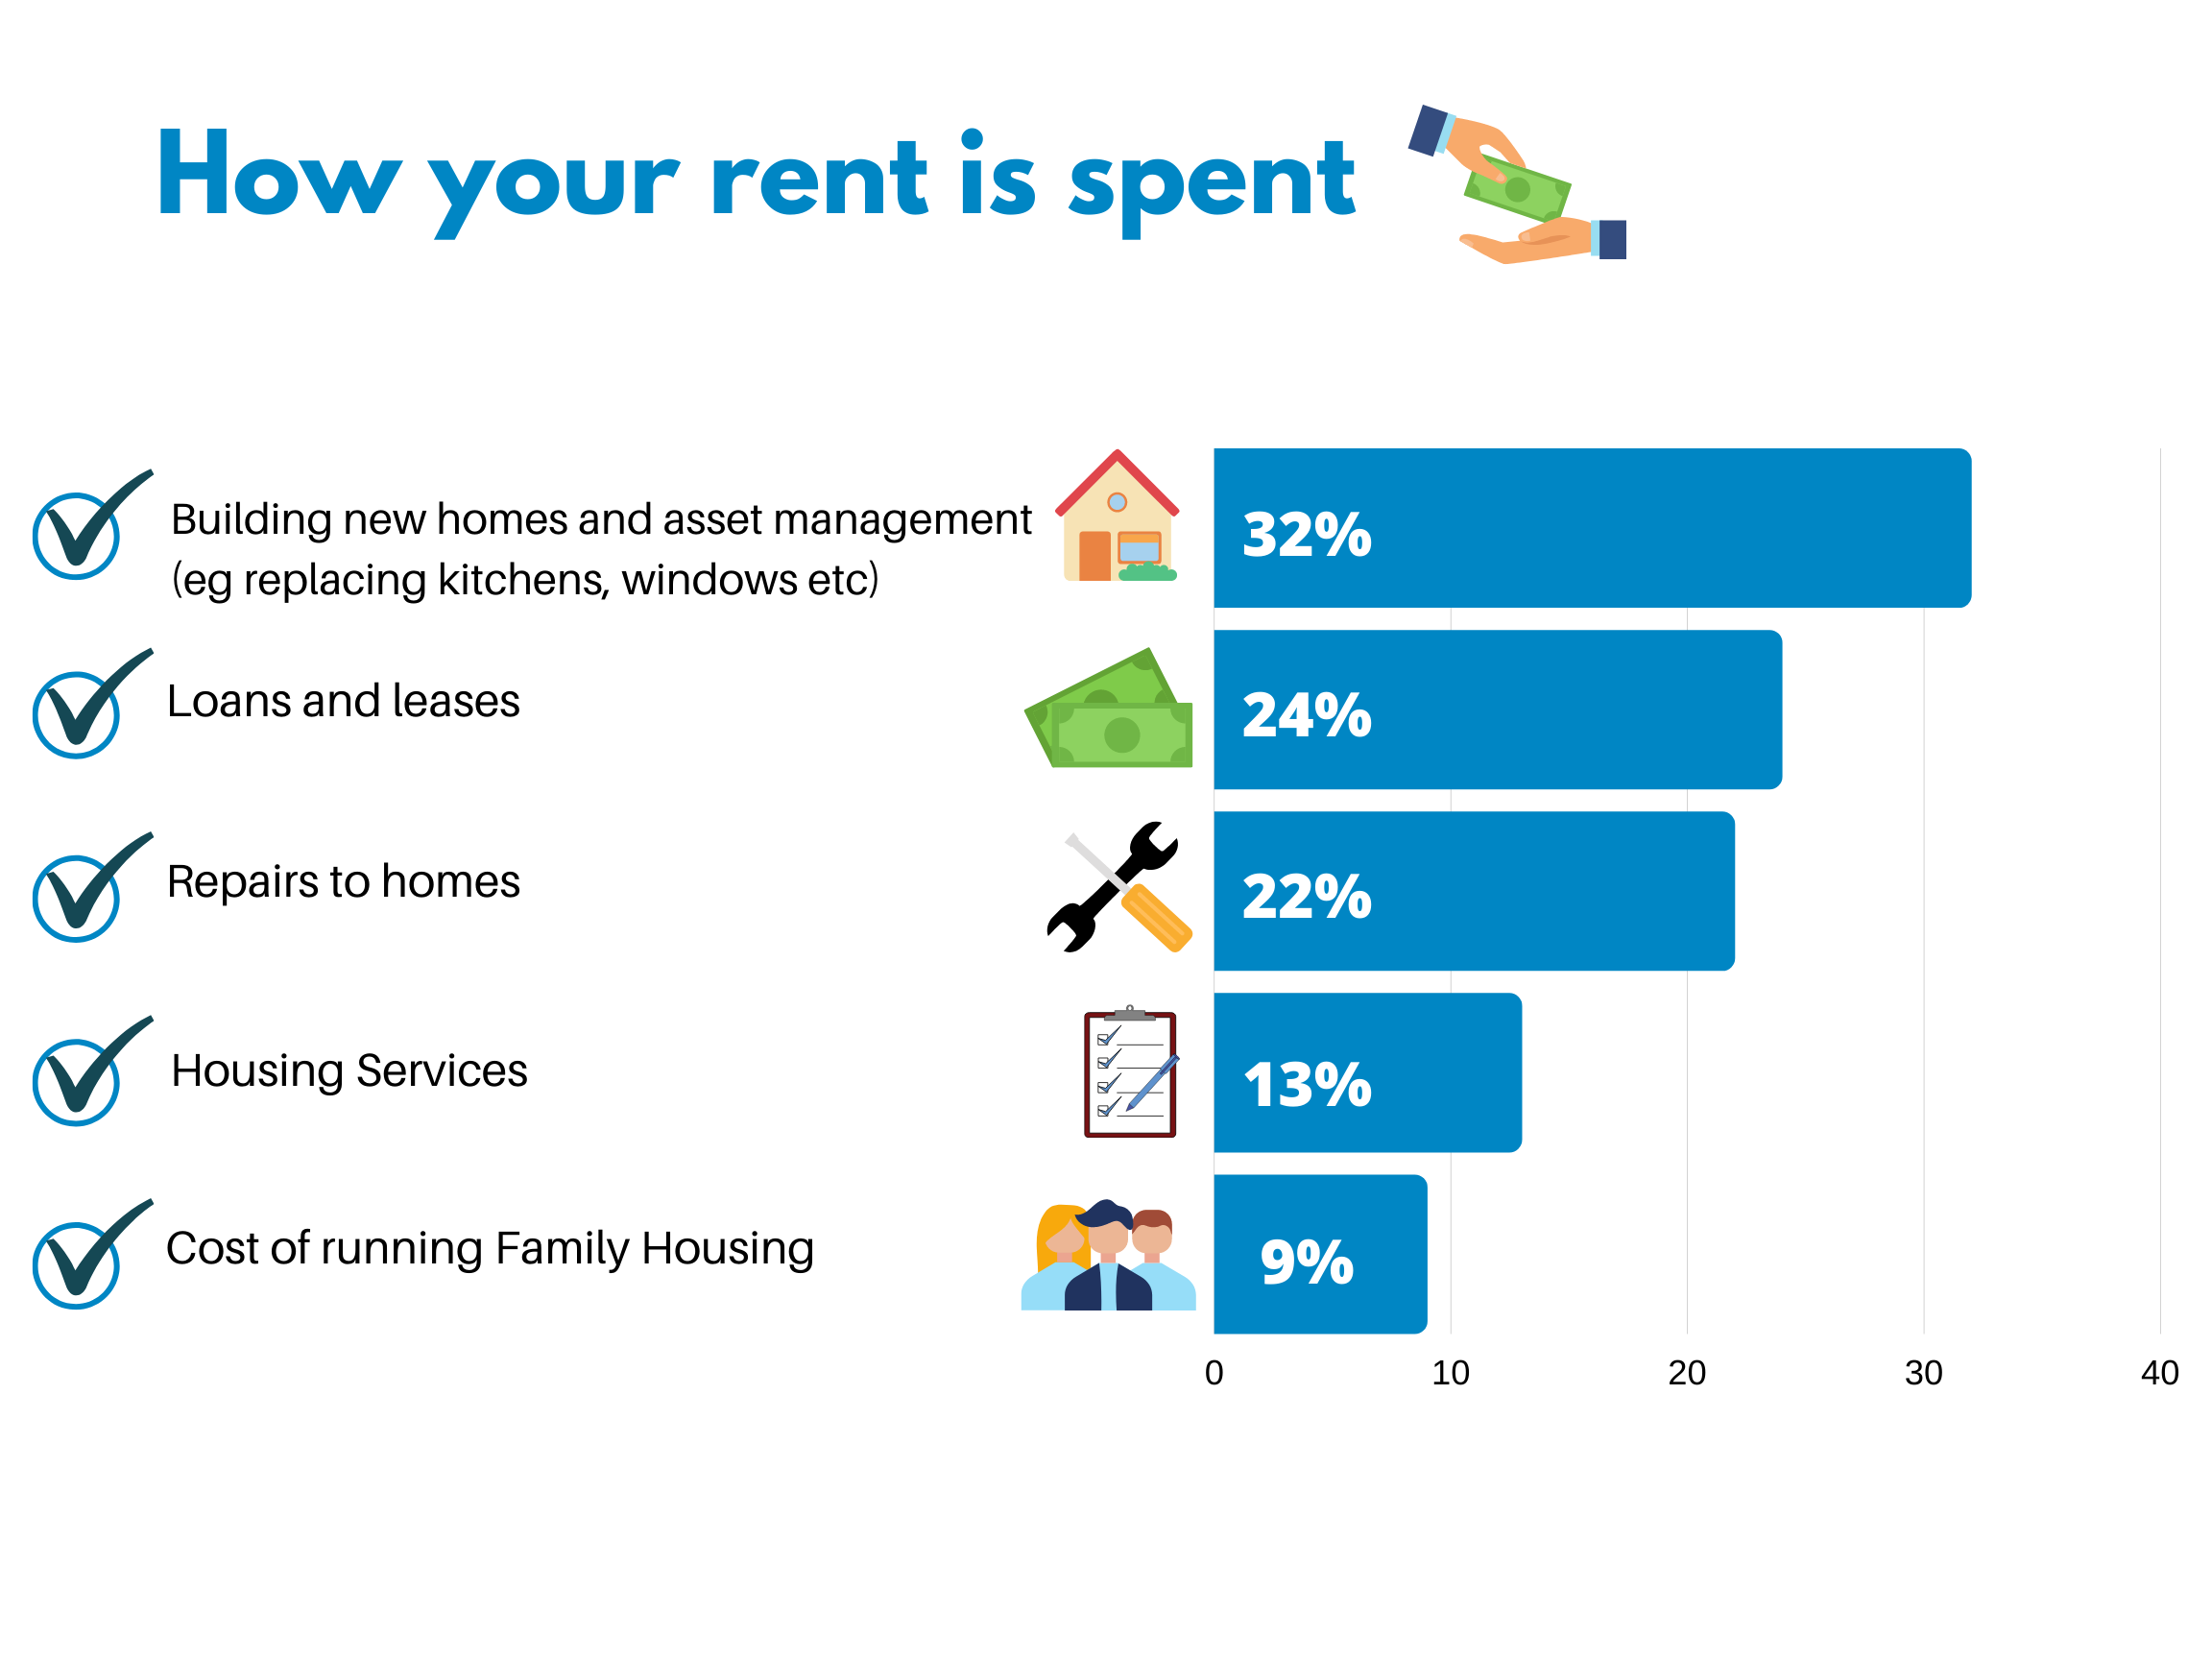 How your rent is spent